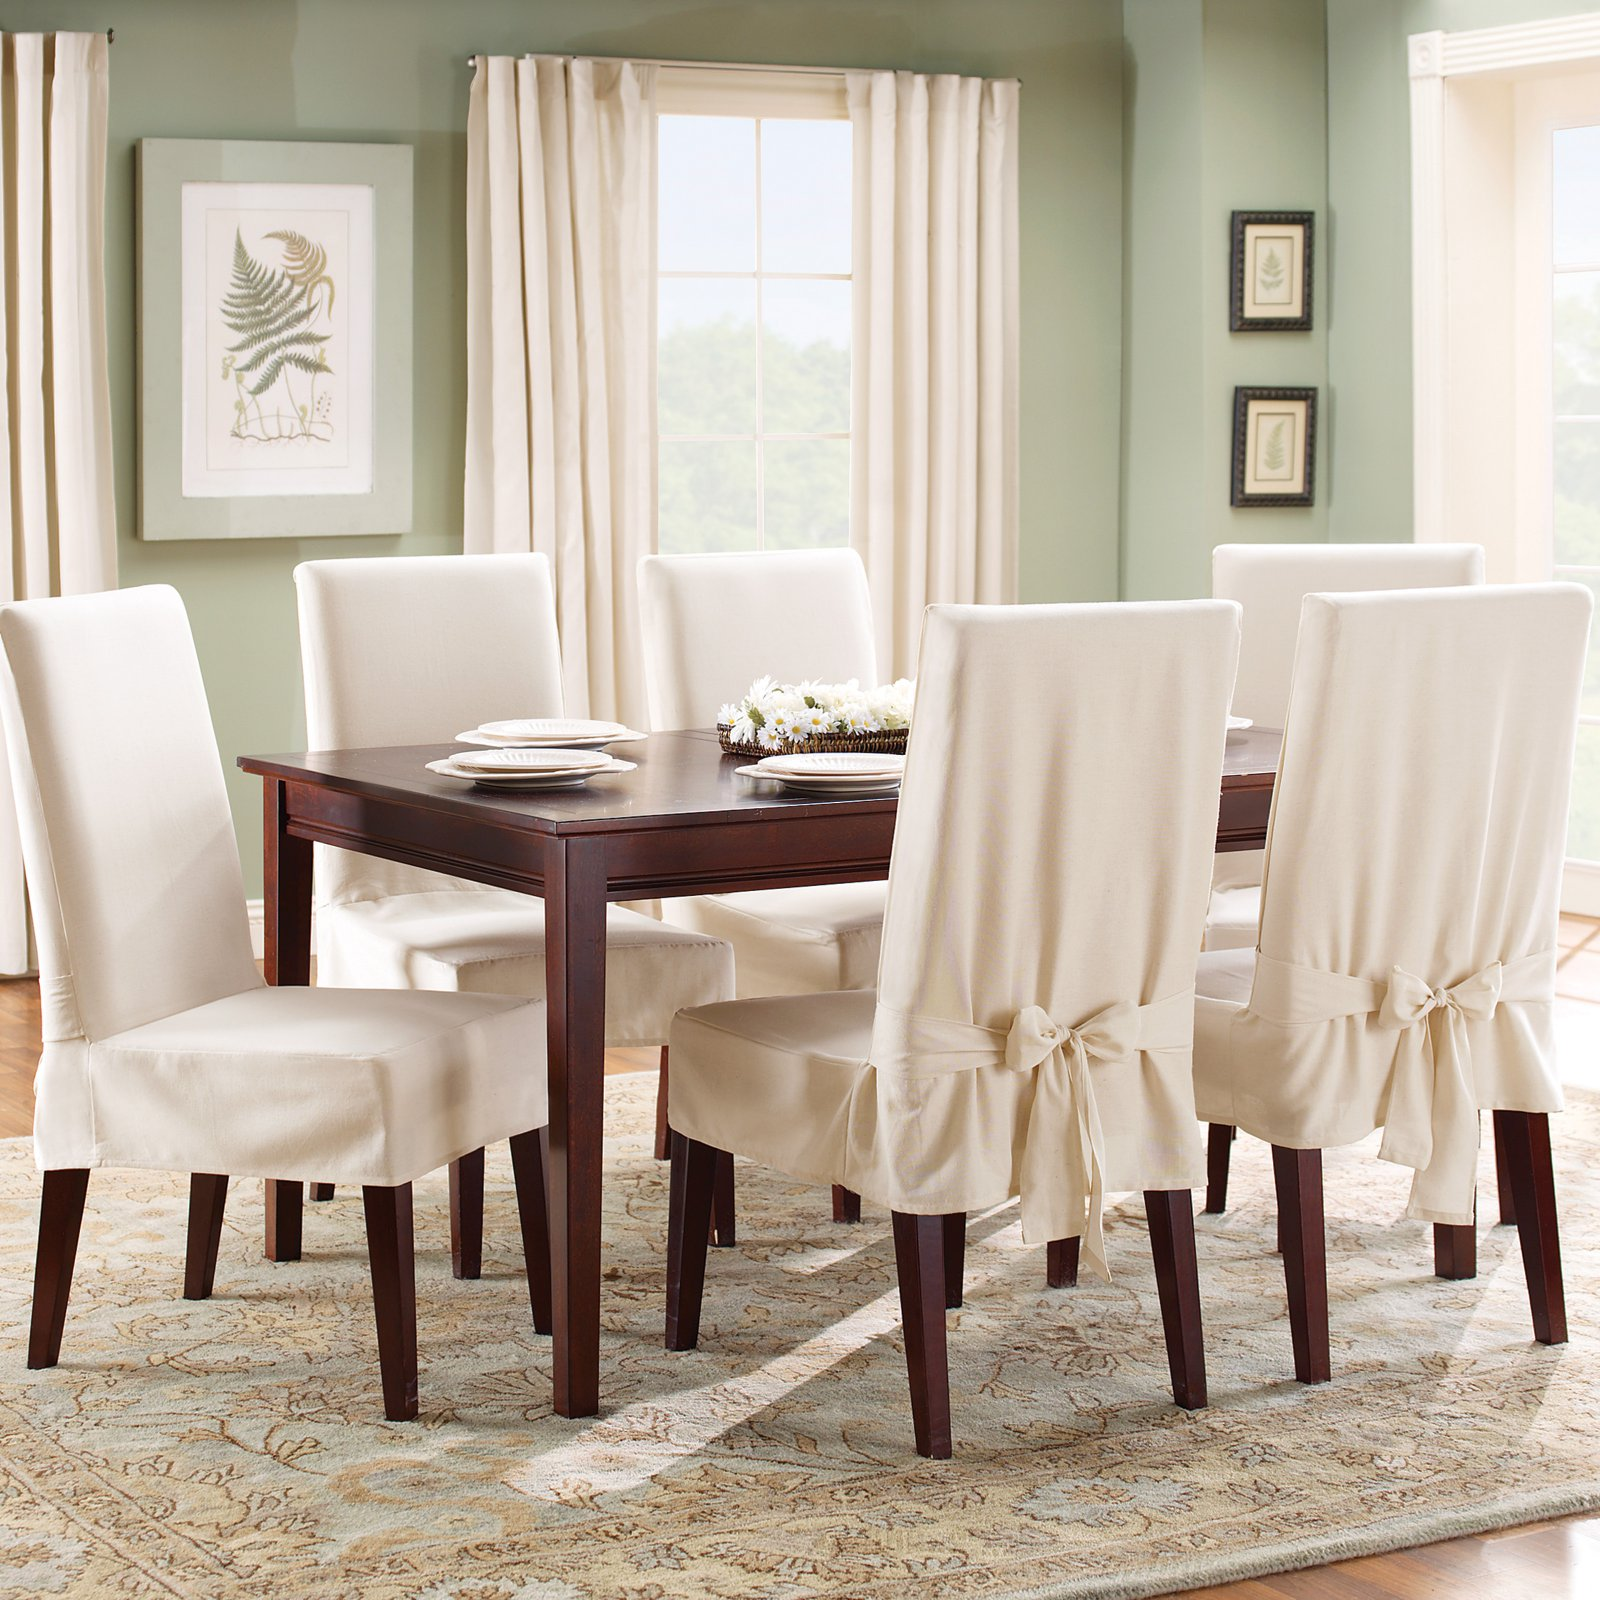 Making Your Events Special   with New Dining Room Chair Covers